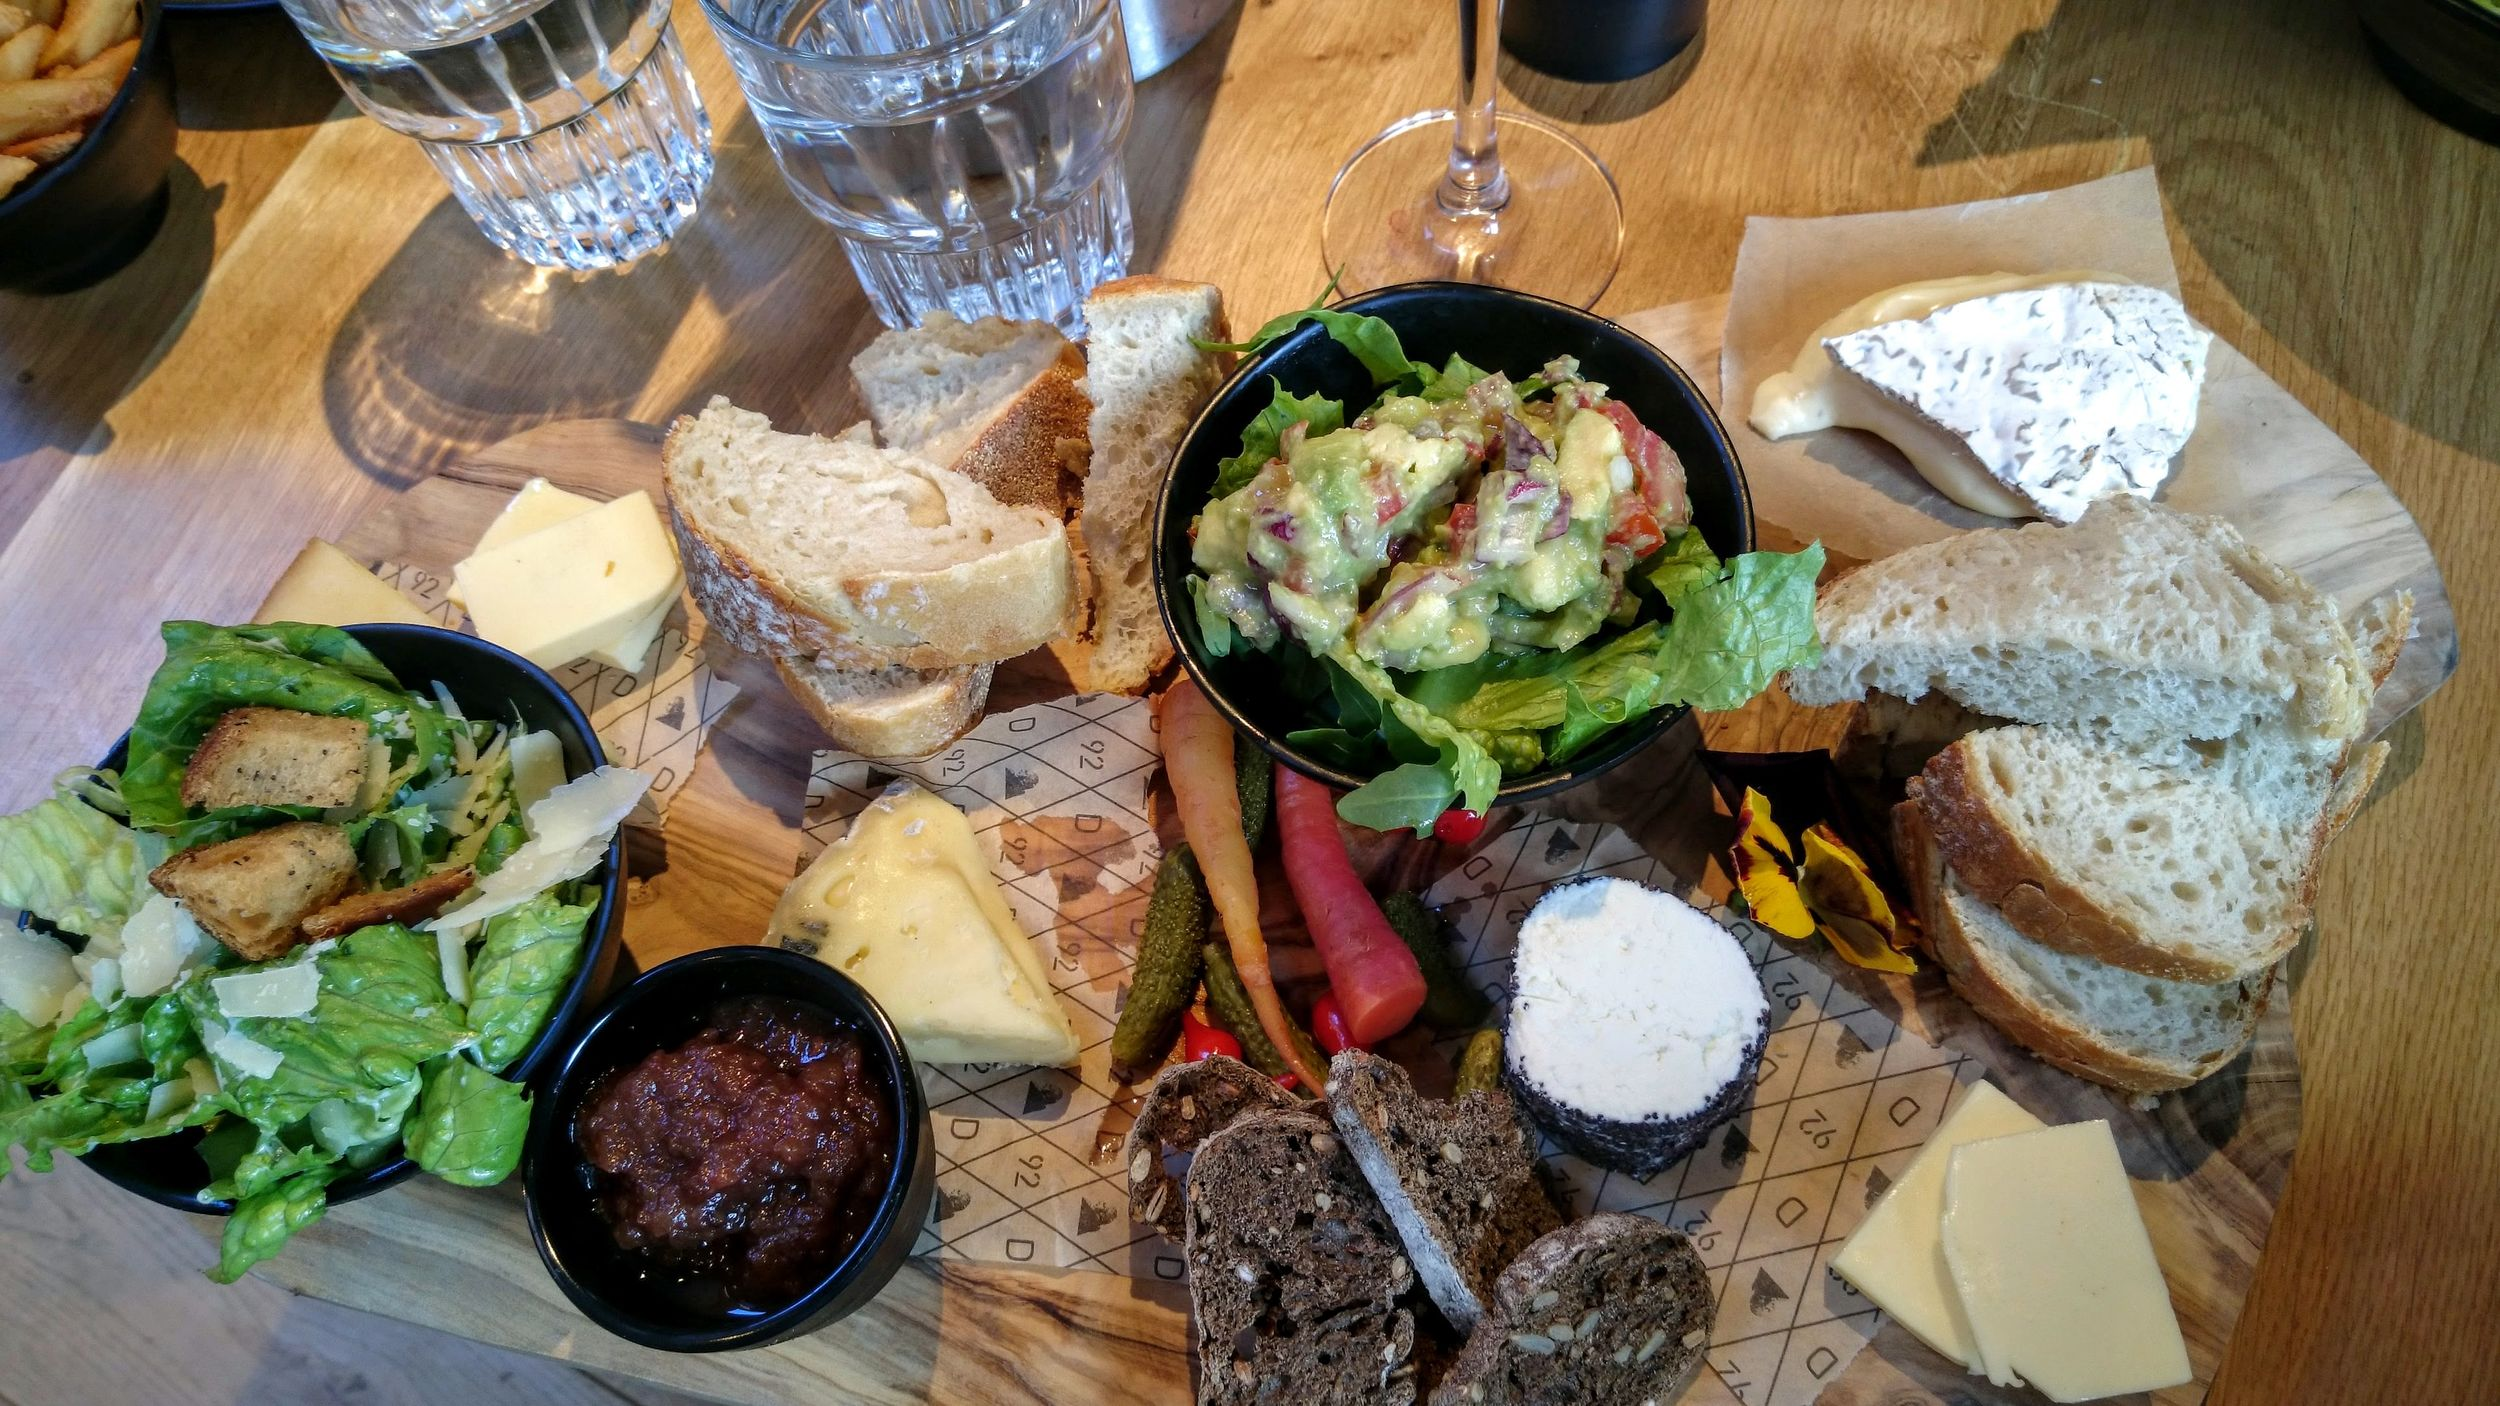 The mid-size sharing board.